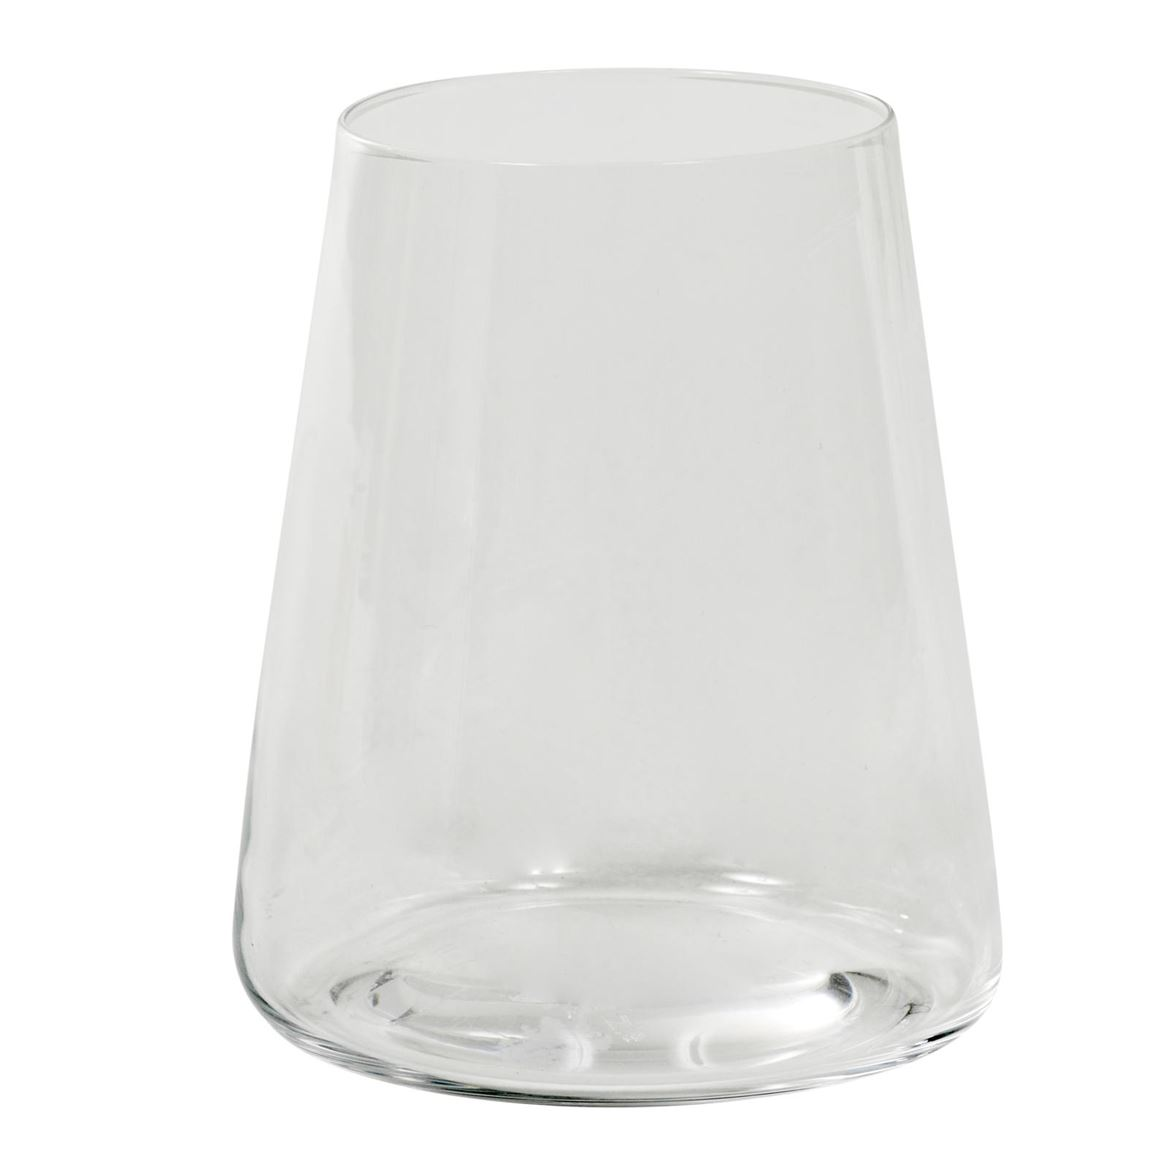 POWER Verre transparent H 11 cm; Ø 9.5 cm_power-verre-transparent-h-11-cm;-ø-9-5-cm